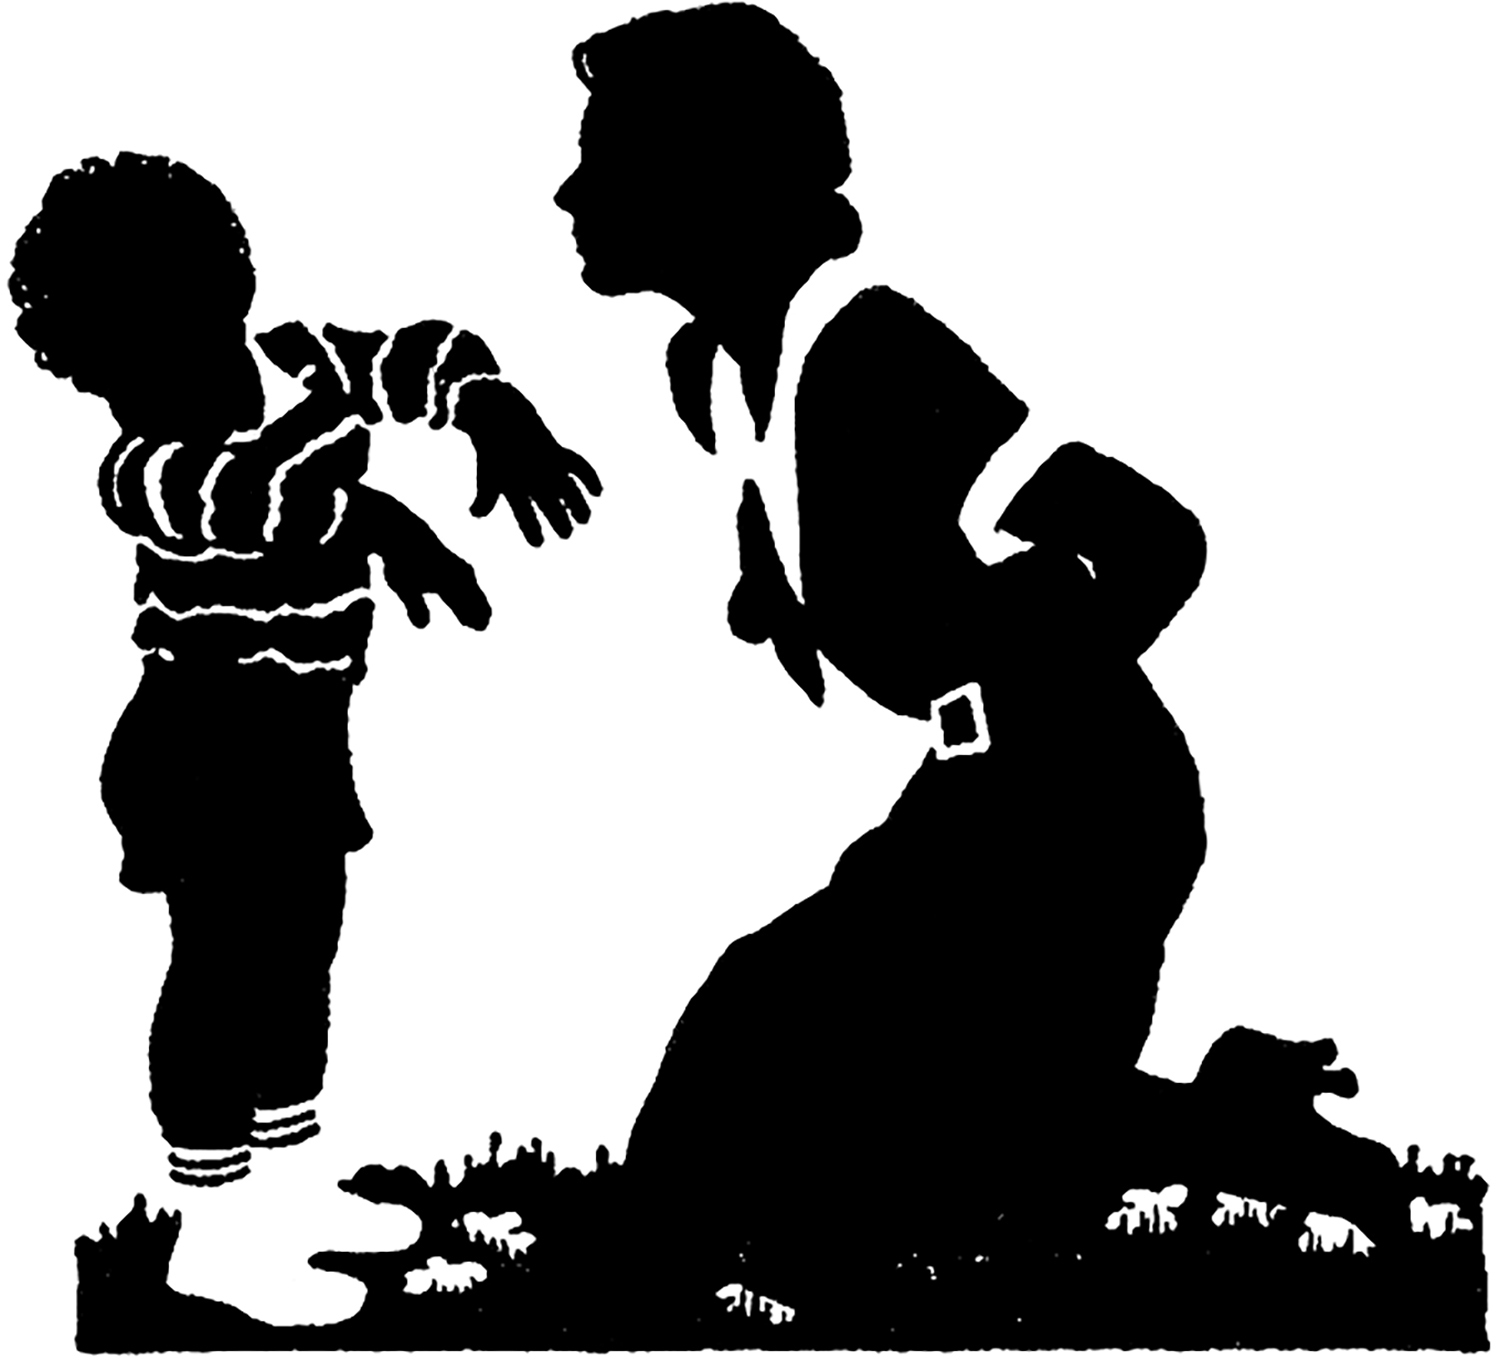 Mother Scolding Child Image - The Graphics Fairy